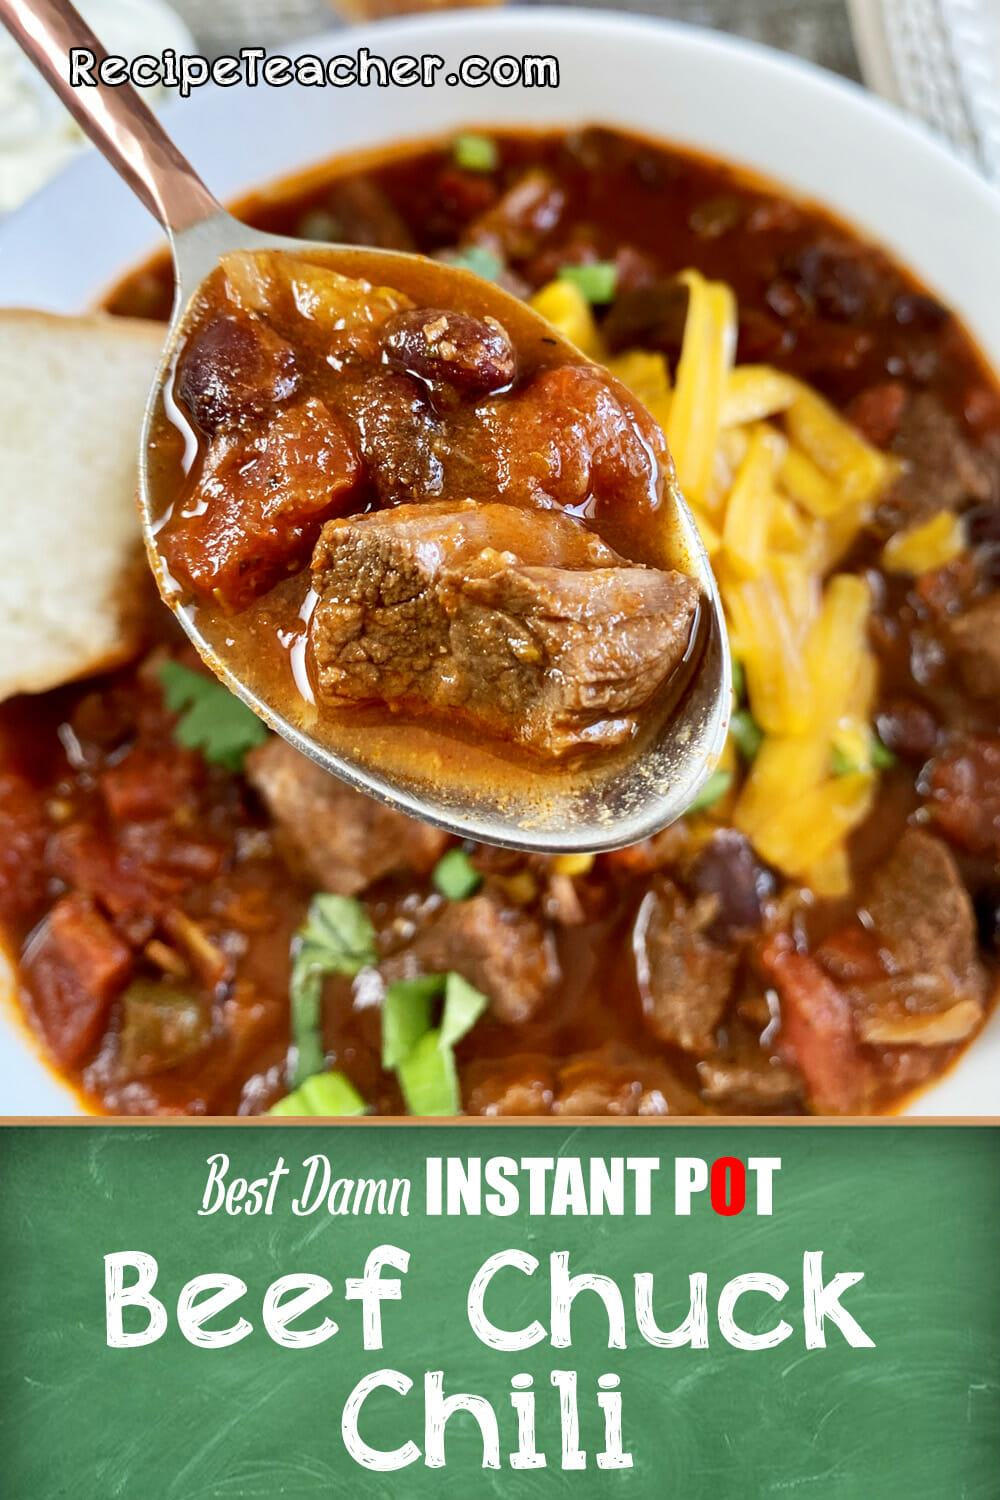 Recipe for Instant Pot beef chili